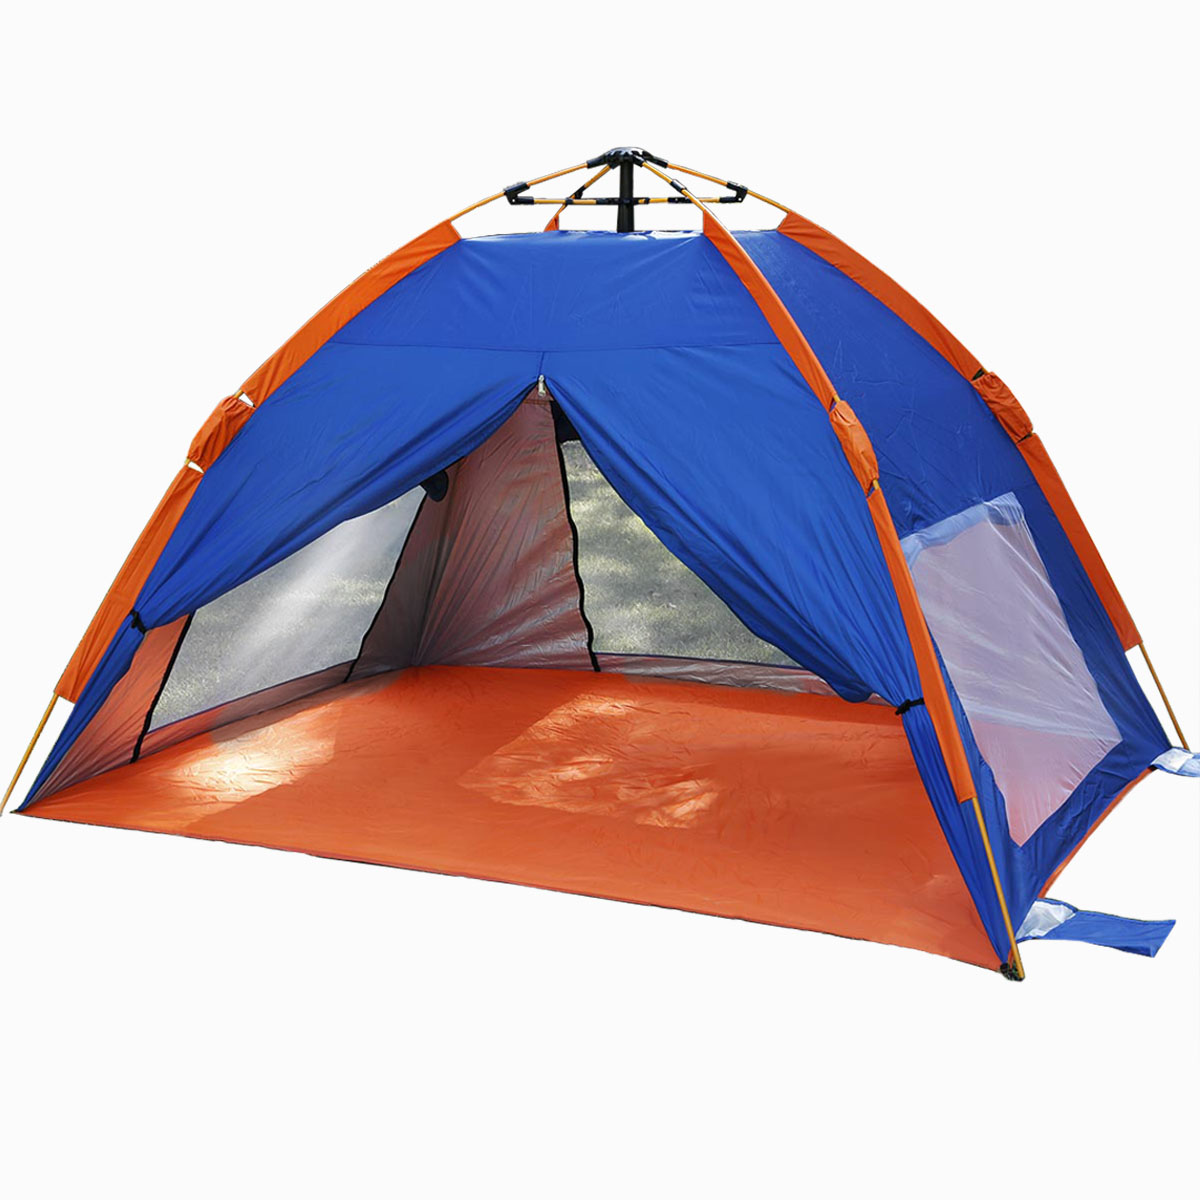 Qwest Instant Outdoor Beach Sun Shade Tent C&ing Canopy Shelter Portable Tarp Blue Orange  sc 1 st  Walmart.com & Qwest Instant Outdoor Beach Sun Shade Tent Camping Canopy Shelter ...